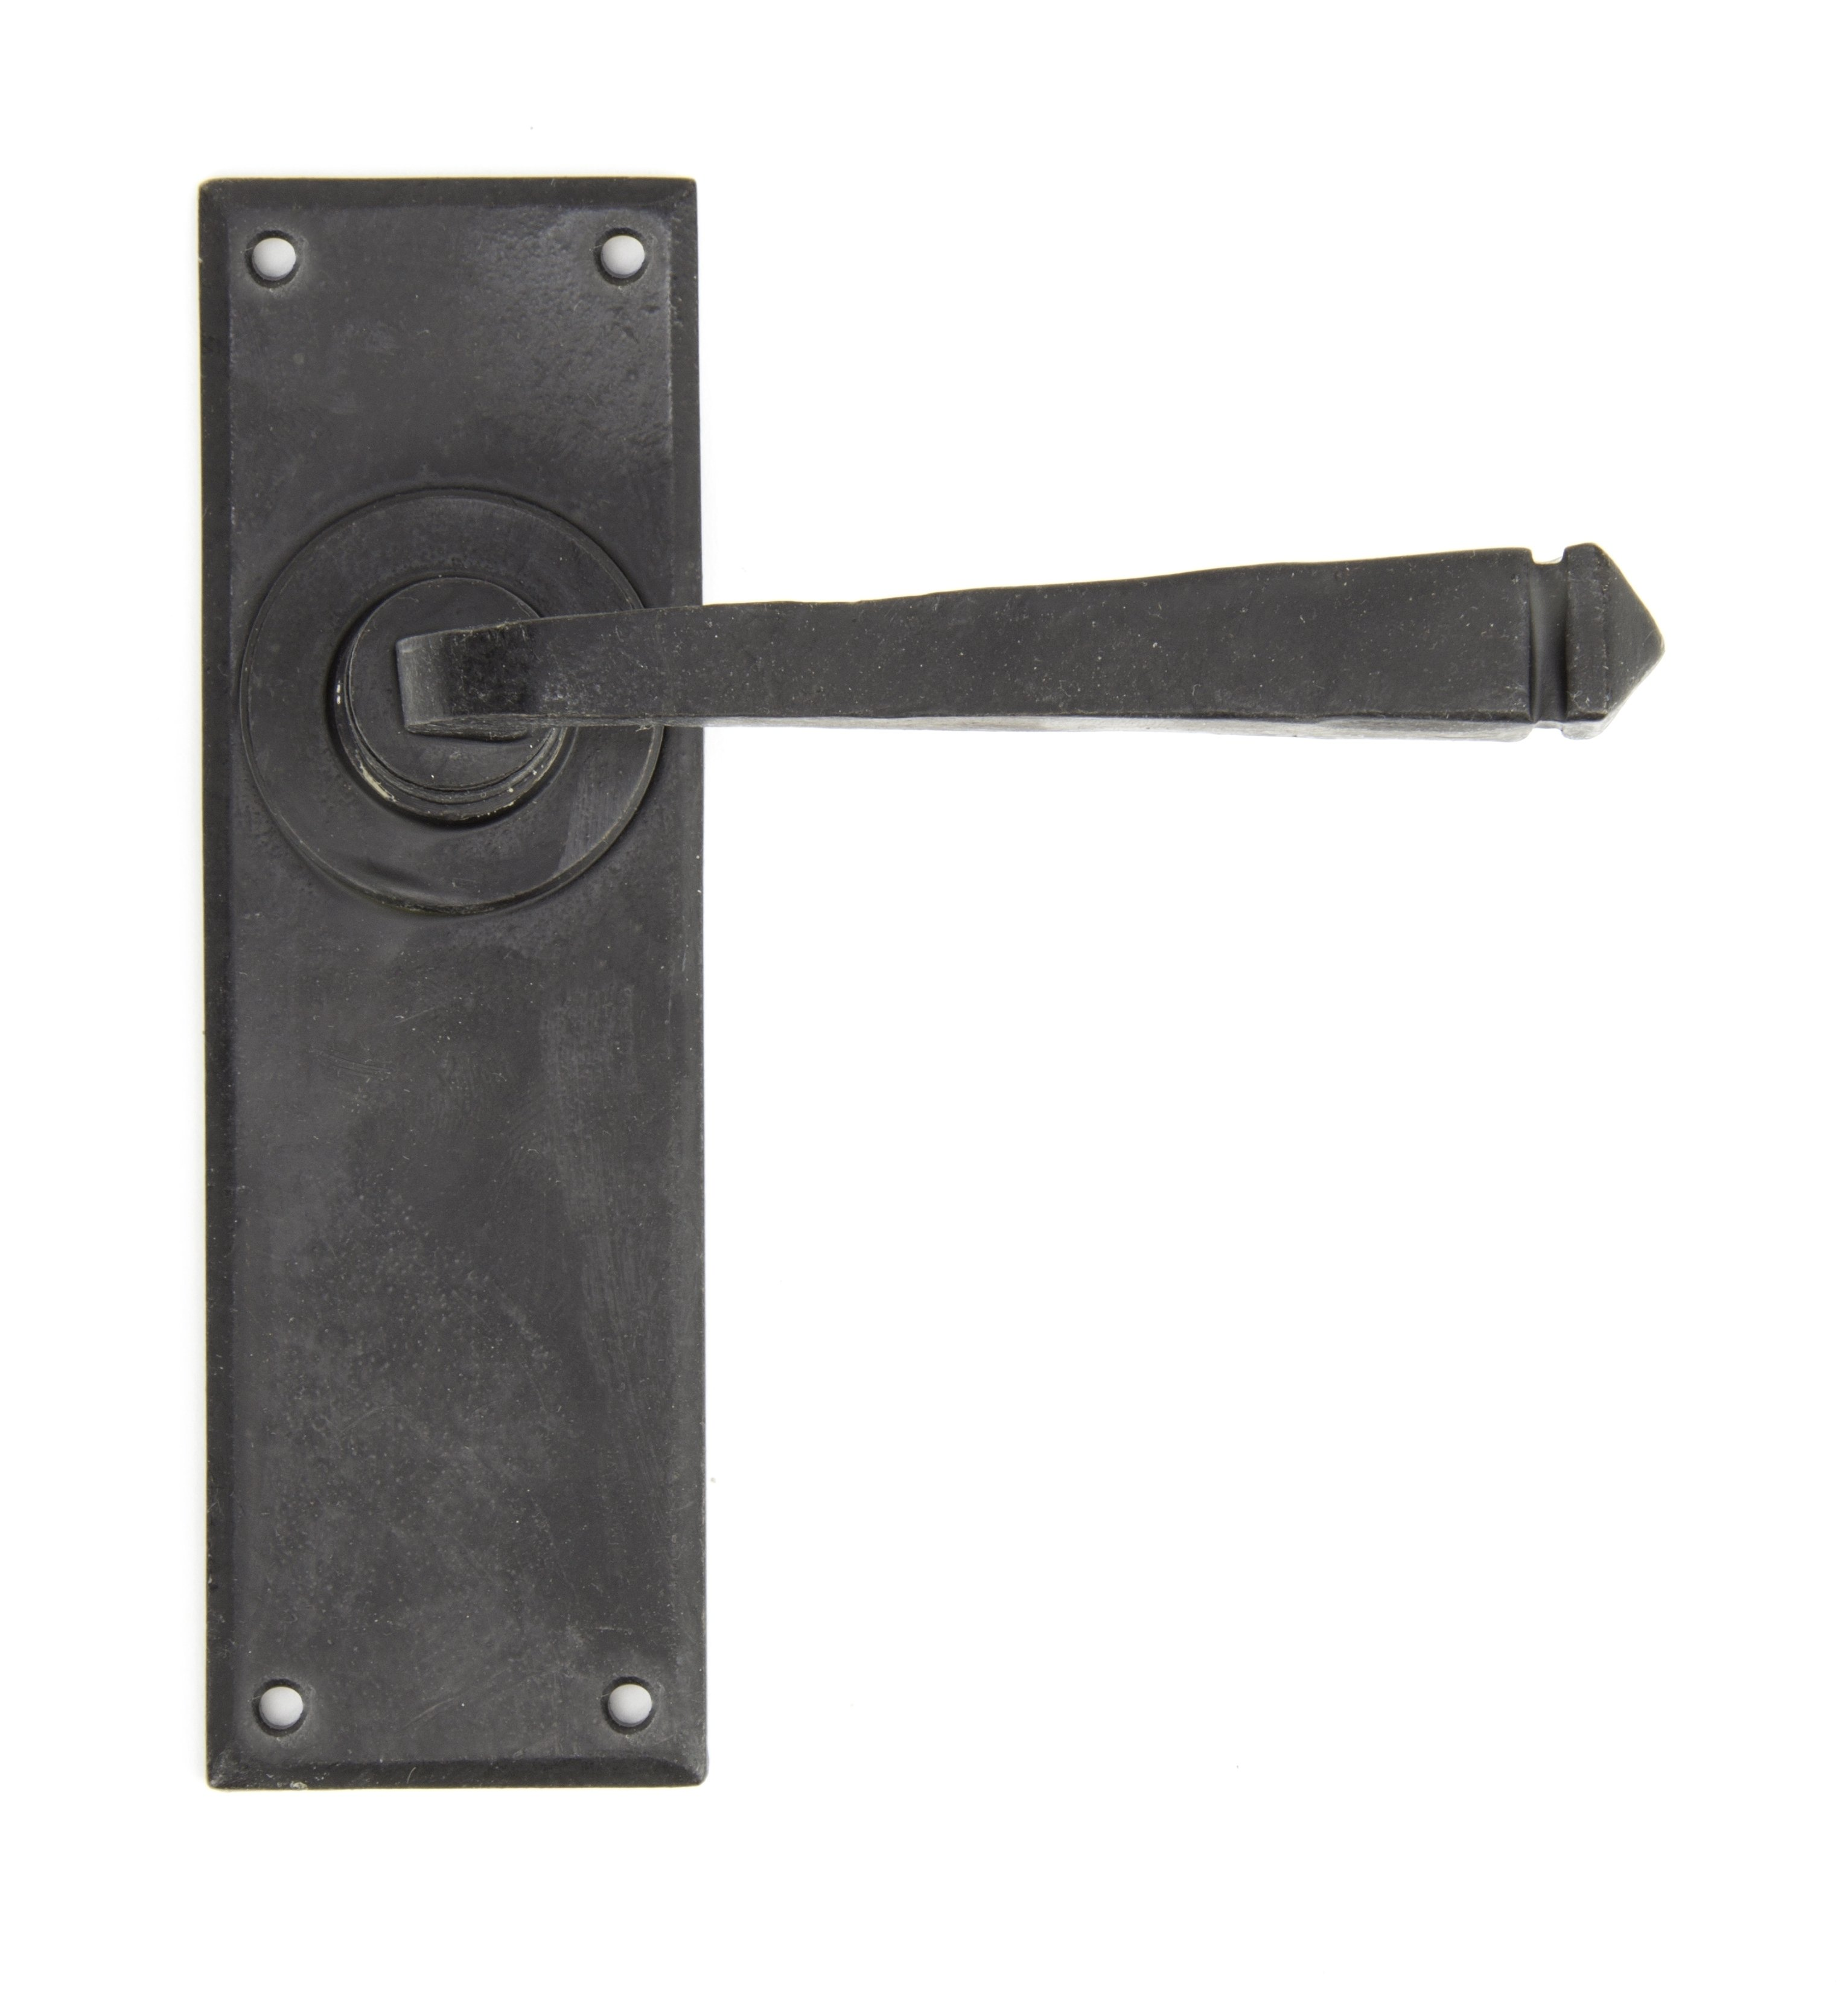 External Beeswax Avon Lever Latch Set